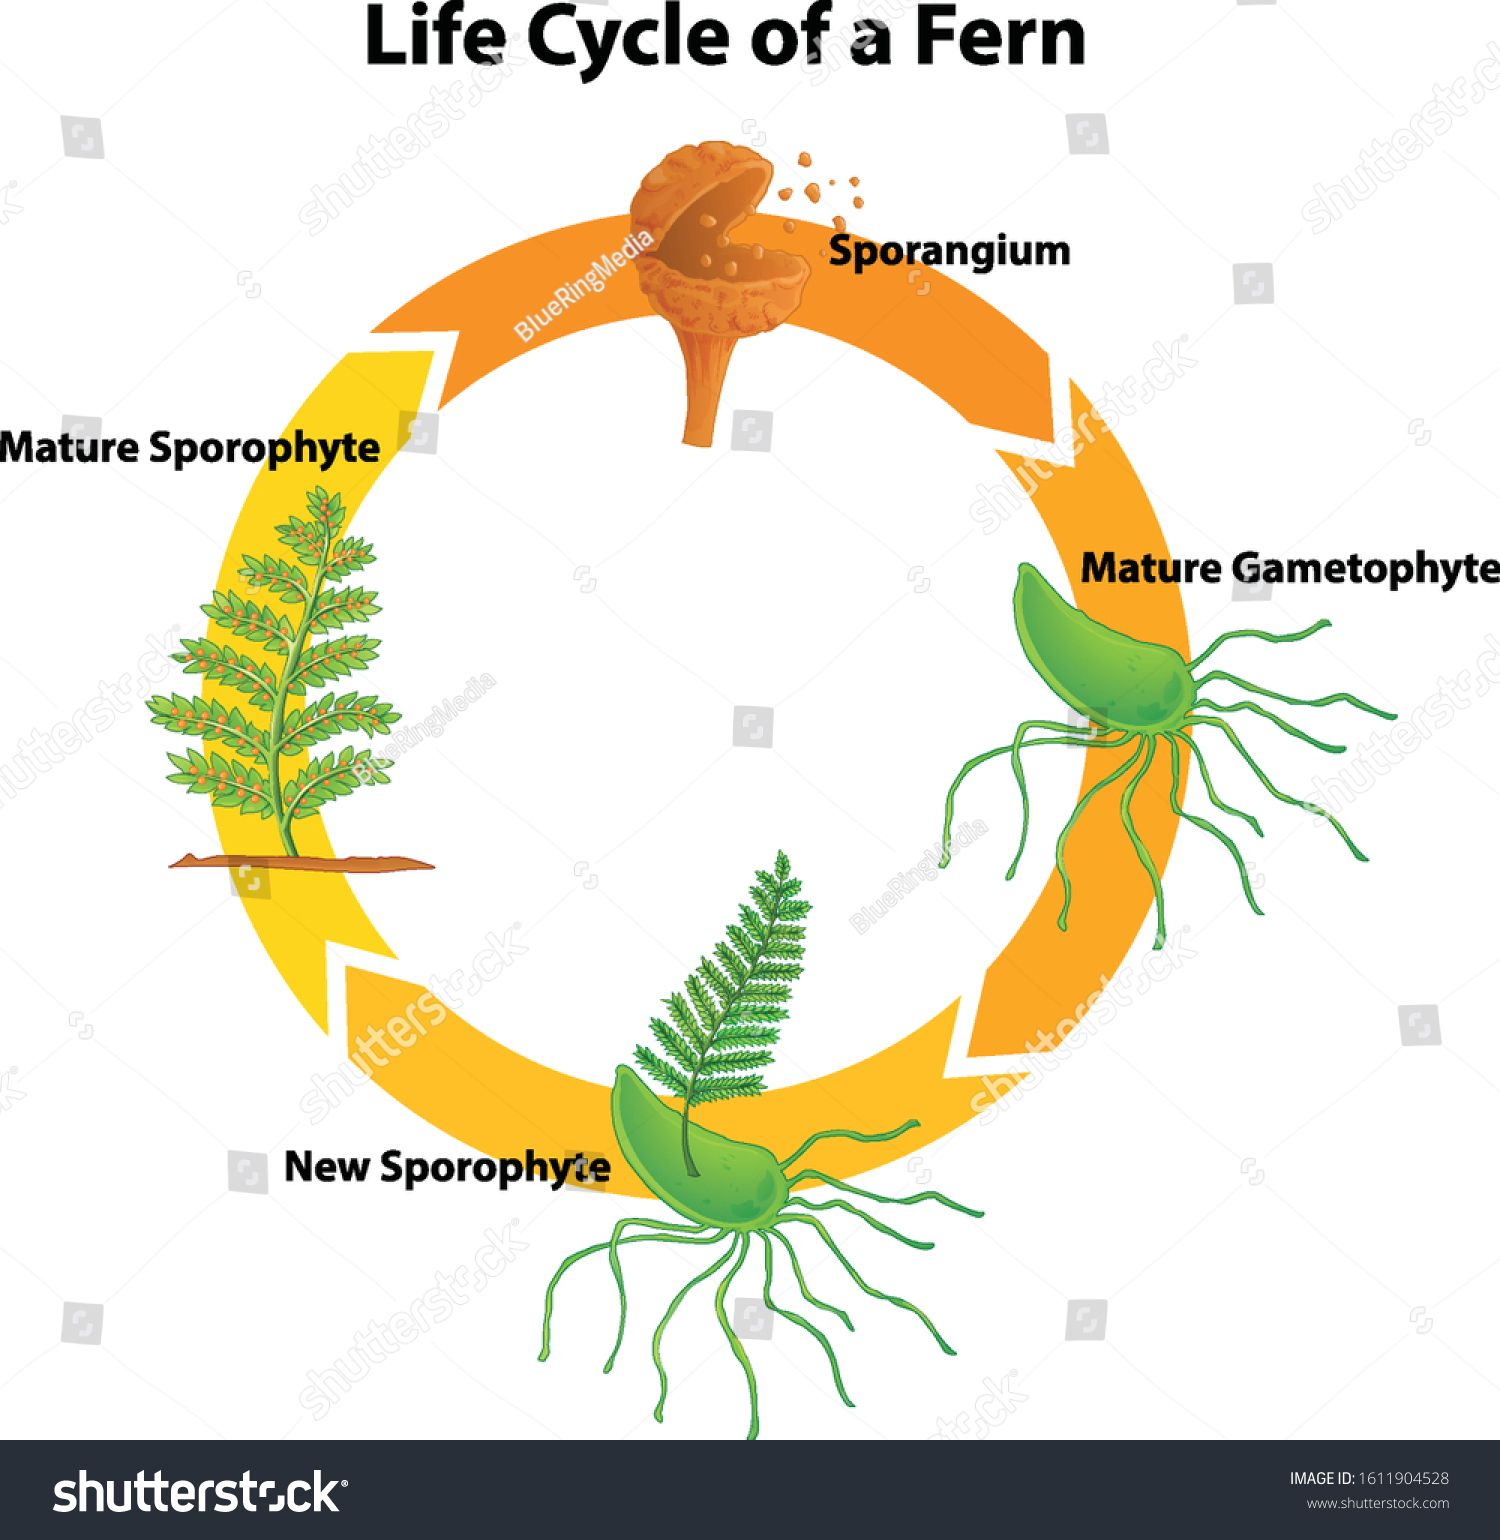 Diagram Showing Life Cycle Of Fern Illustration Ad